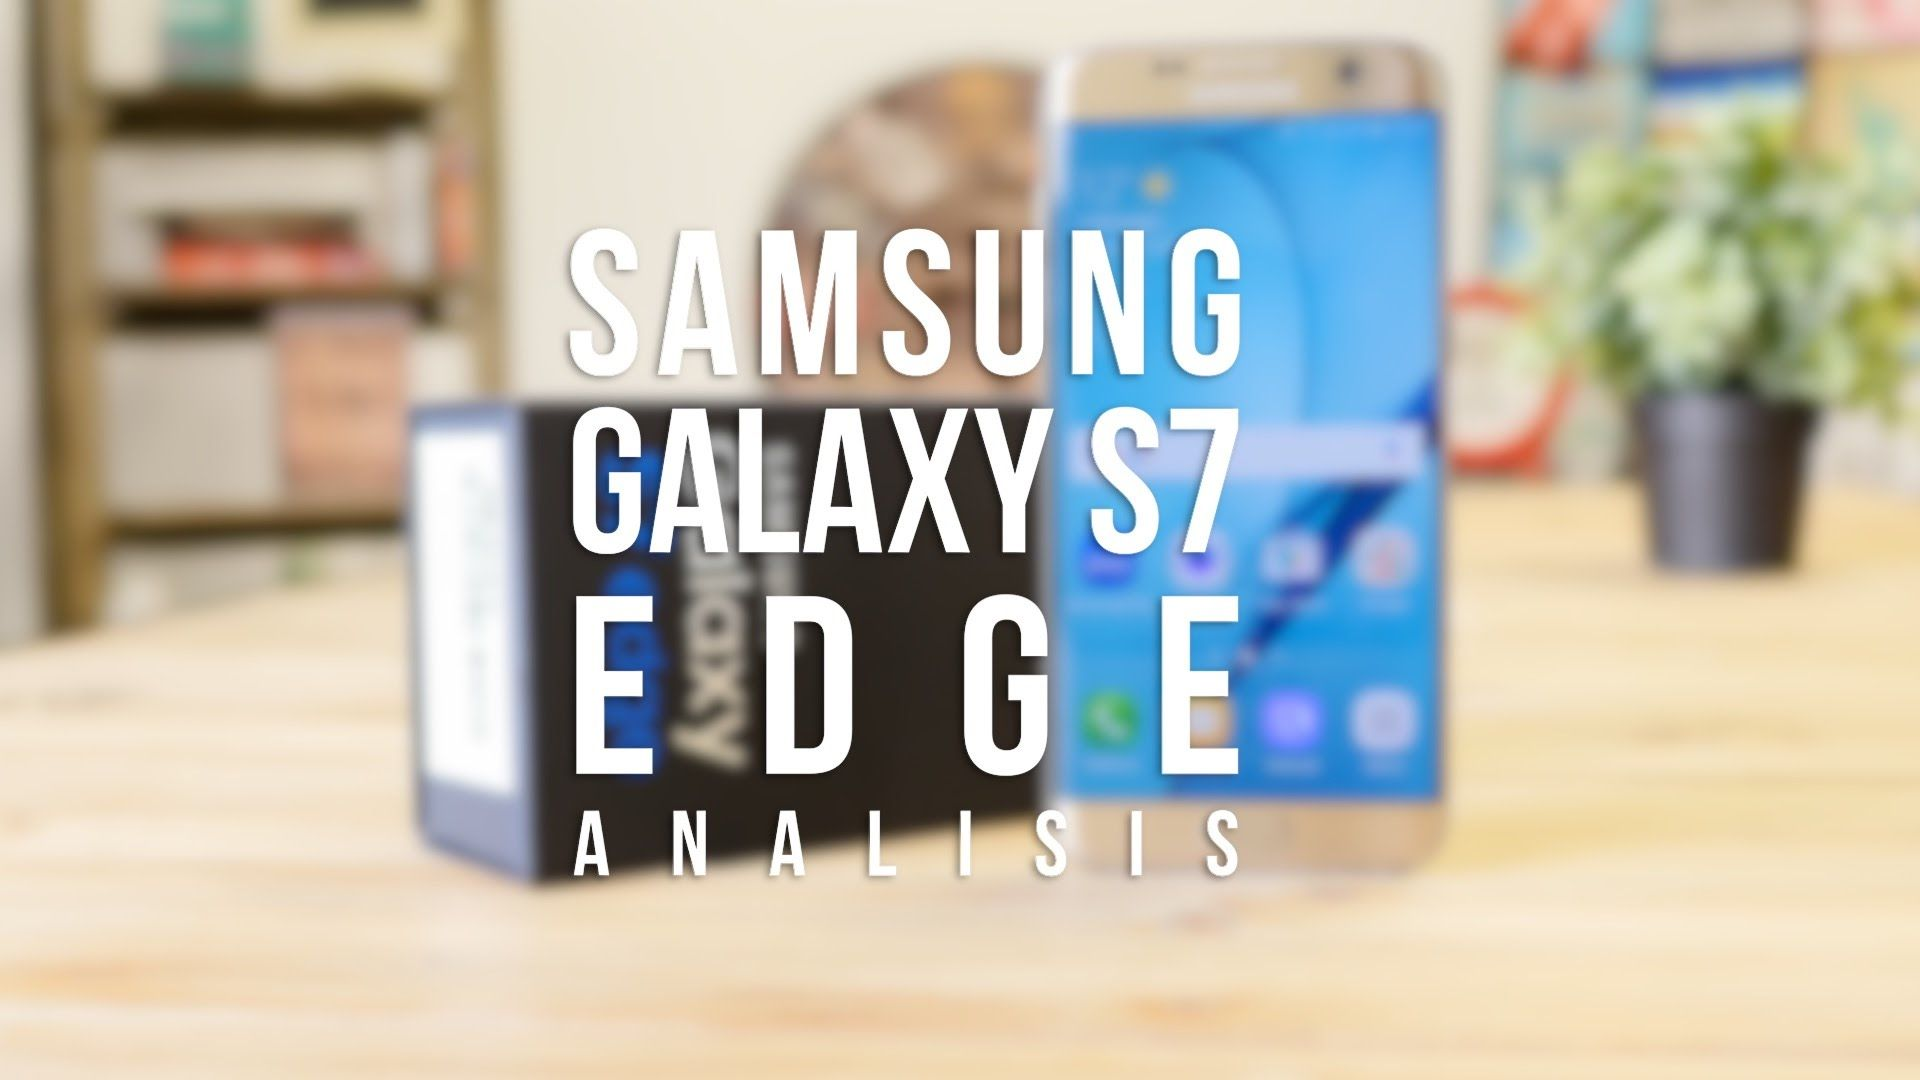 Análisis Samsung Galaxy S7 Edge, review en español | Samsung Galaxy S7 Edge analysis, review in Spanish | #Android #Samsung #Galaxy #S7Edge #Review